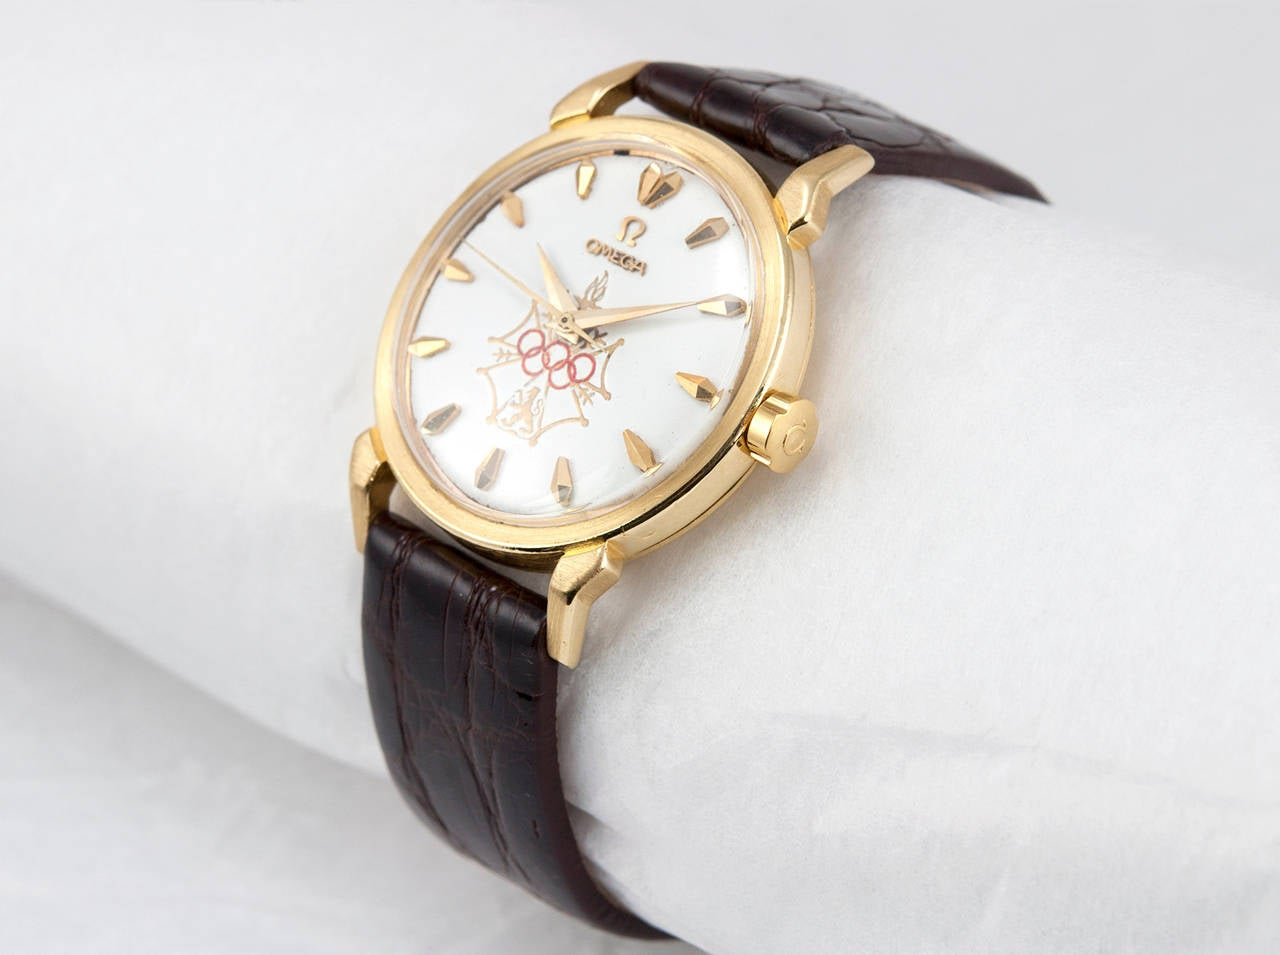 Omega Yellow Gold Seamaster XVI Wristwatch circa 1956 2